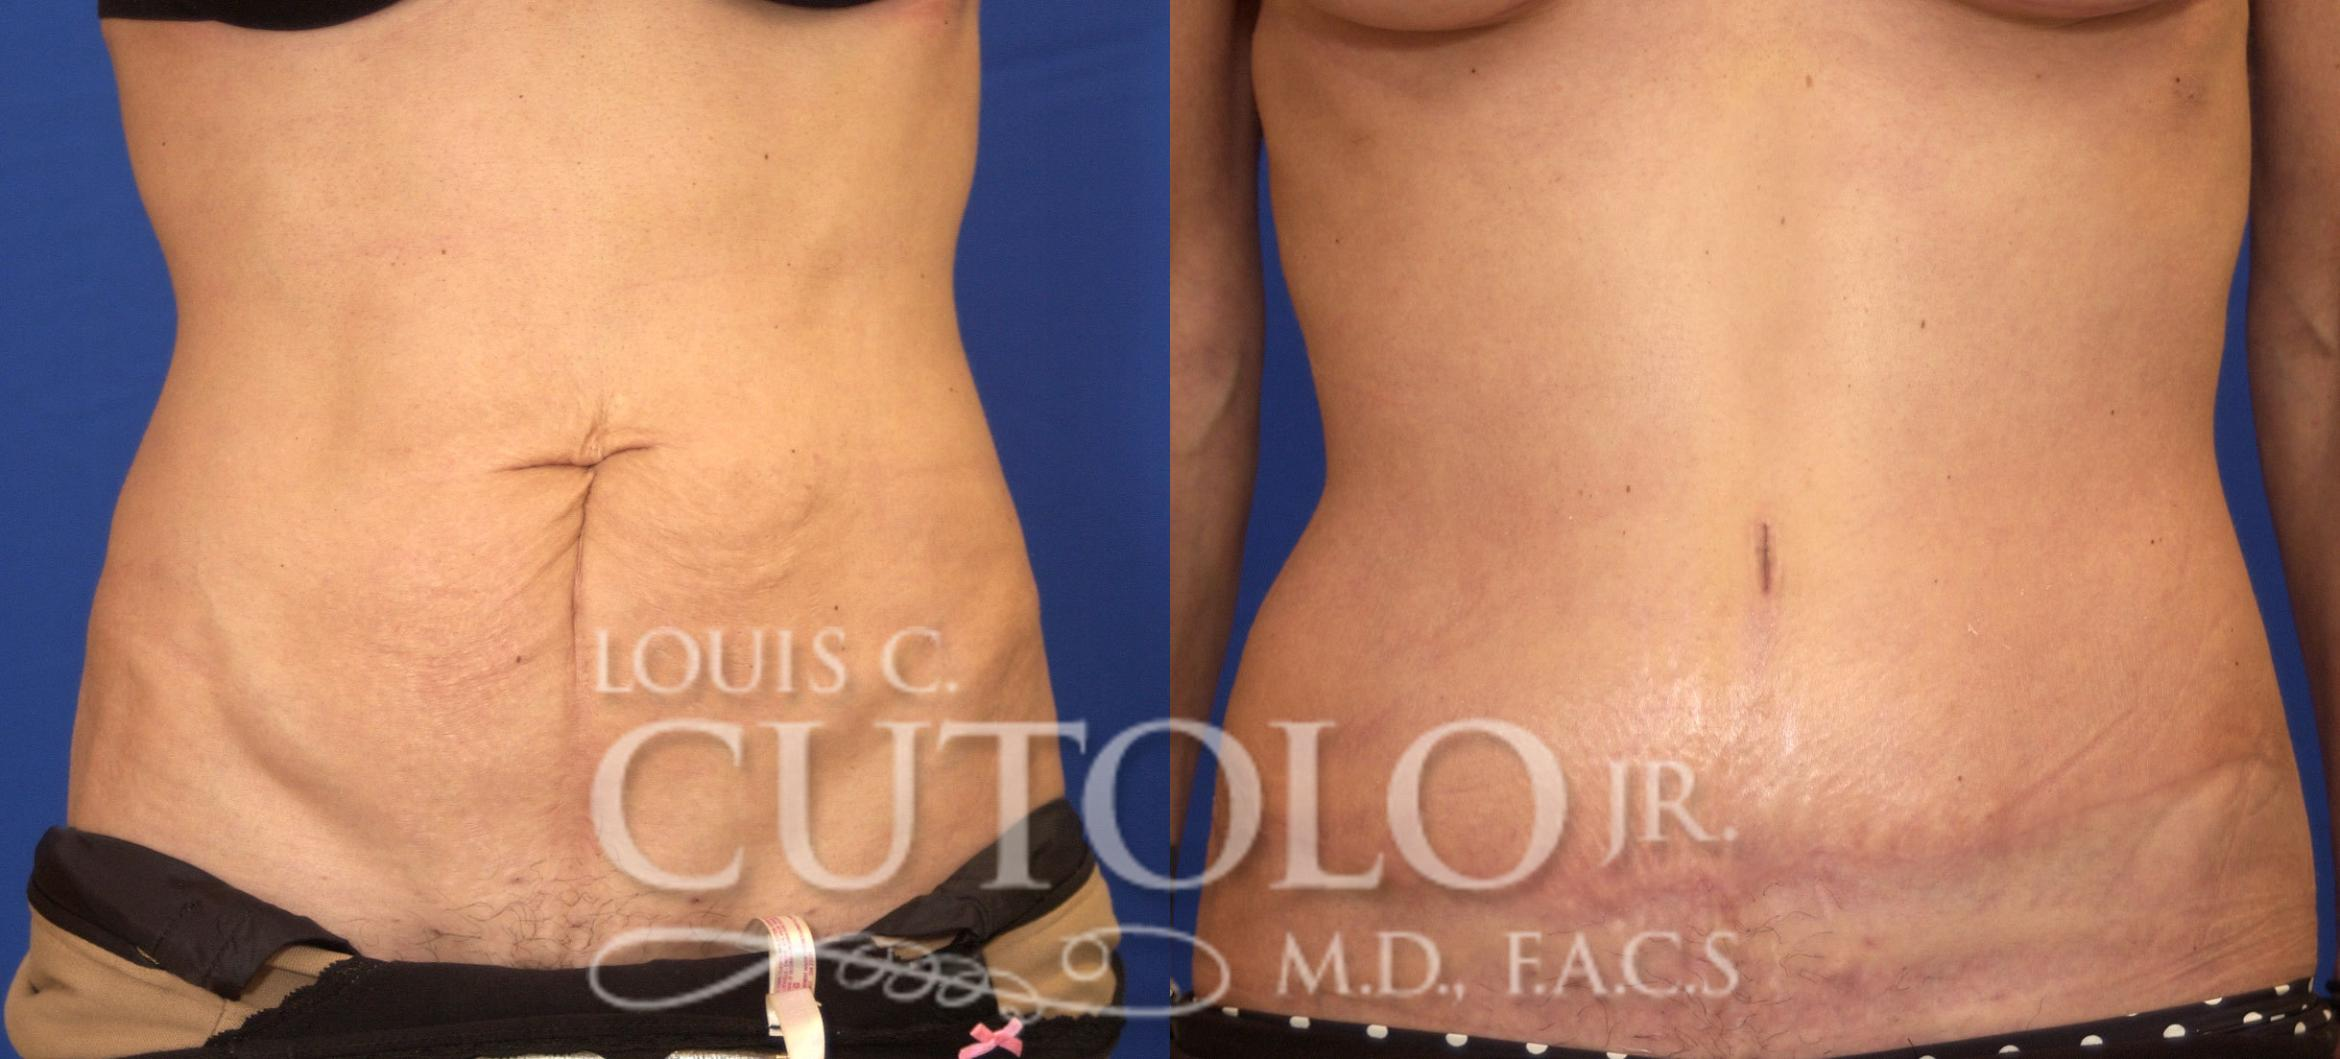 Tummy Tuck Before & After Photo | Brooklyn, Staten Island, Queens, NY | Louis C. Cotolo, Jr., M.D., F.A.C.S.